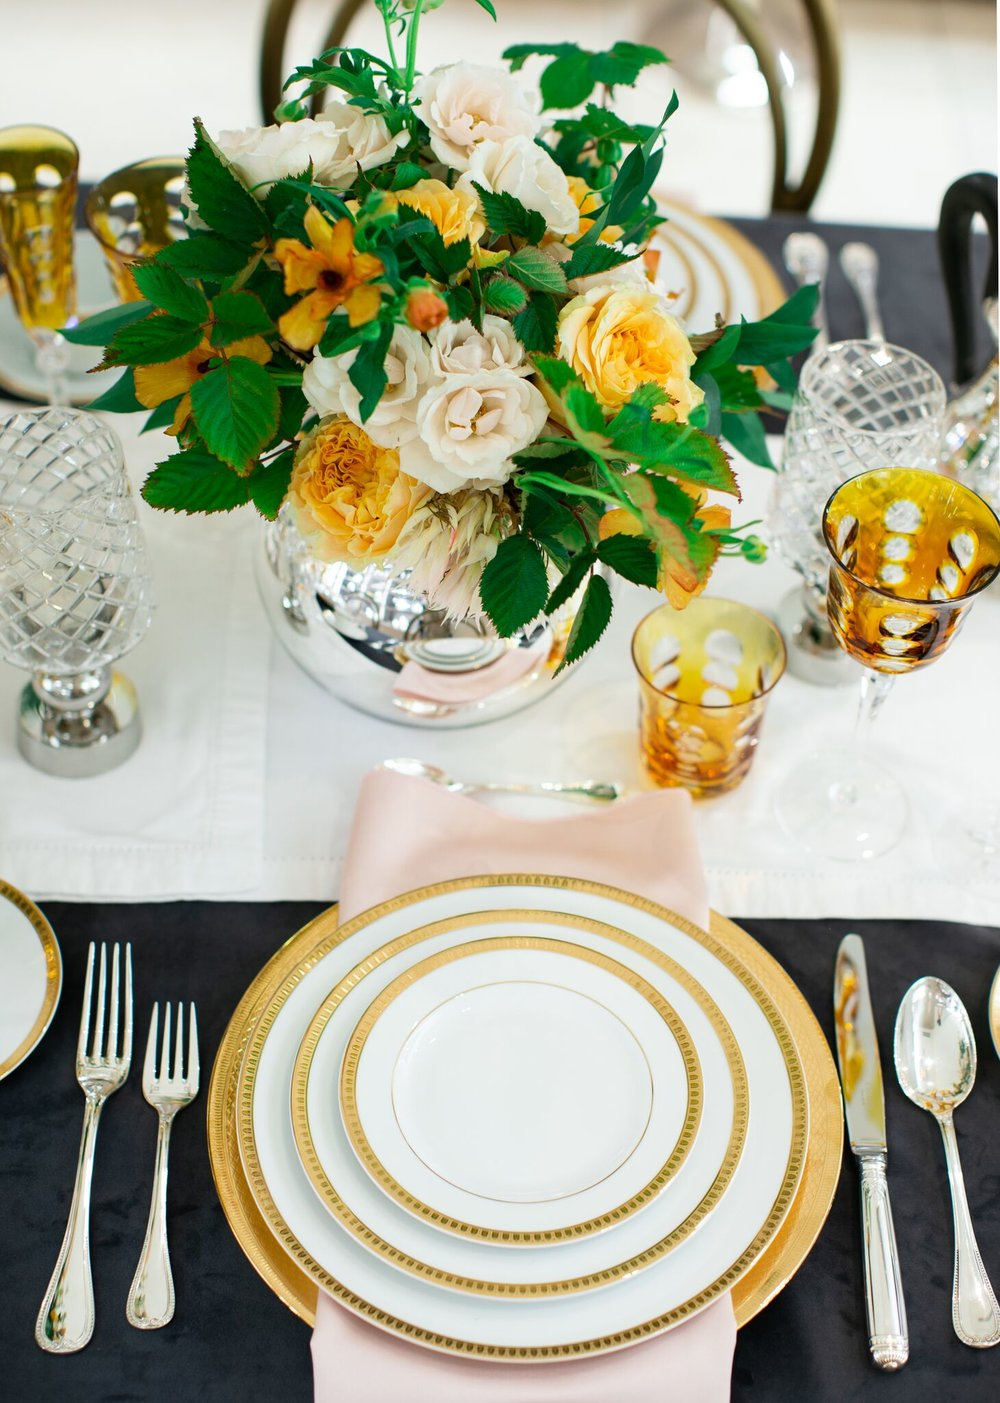 Gold place setting with yellow and ivory flowers.  Maxit Flower Design for Christofle in collaboration with Marie Flanigan Interior